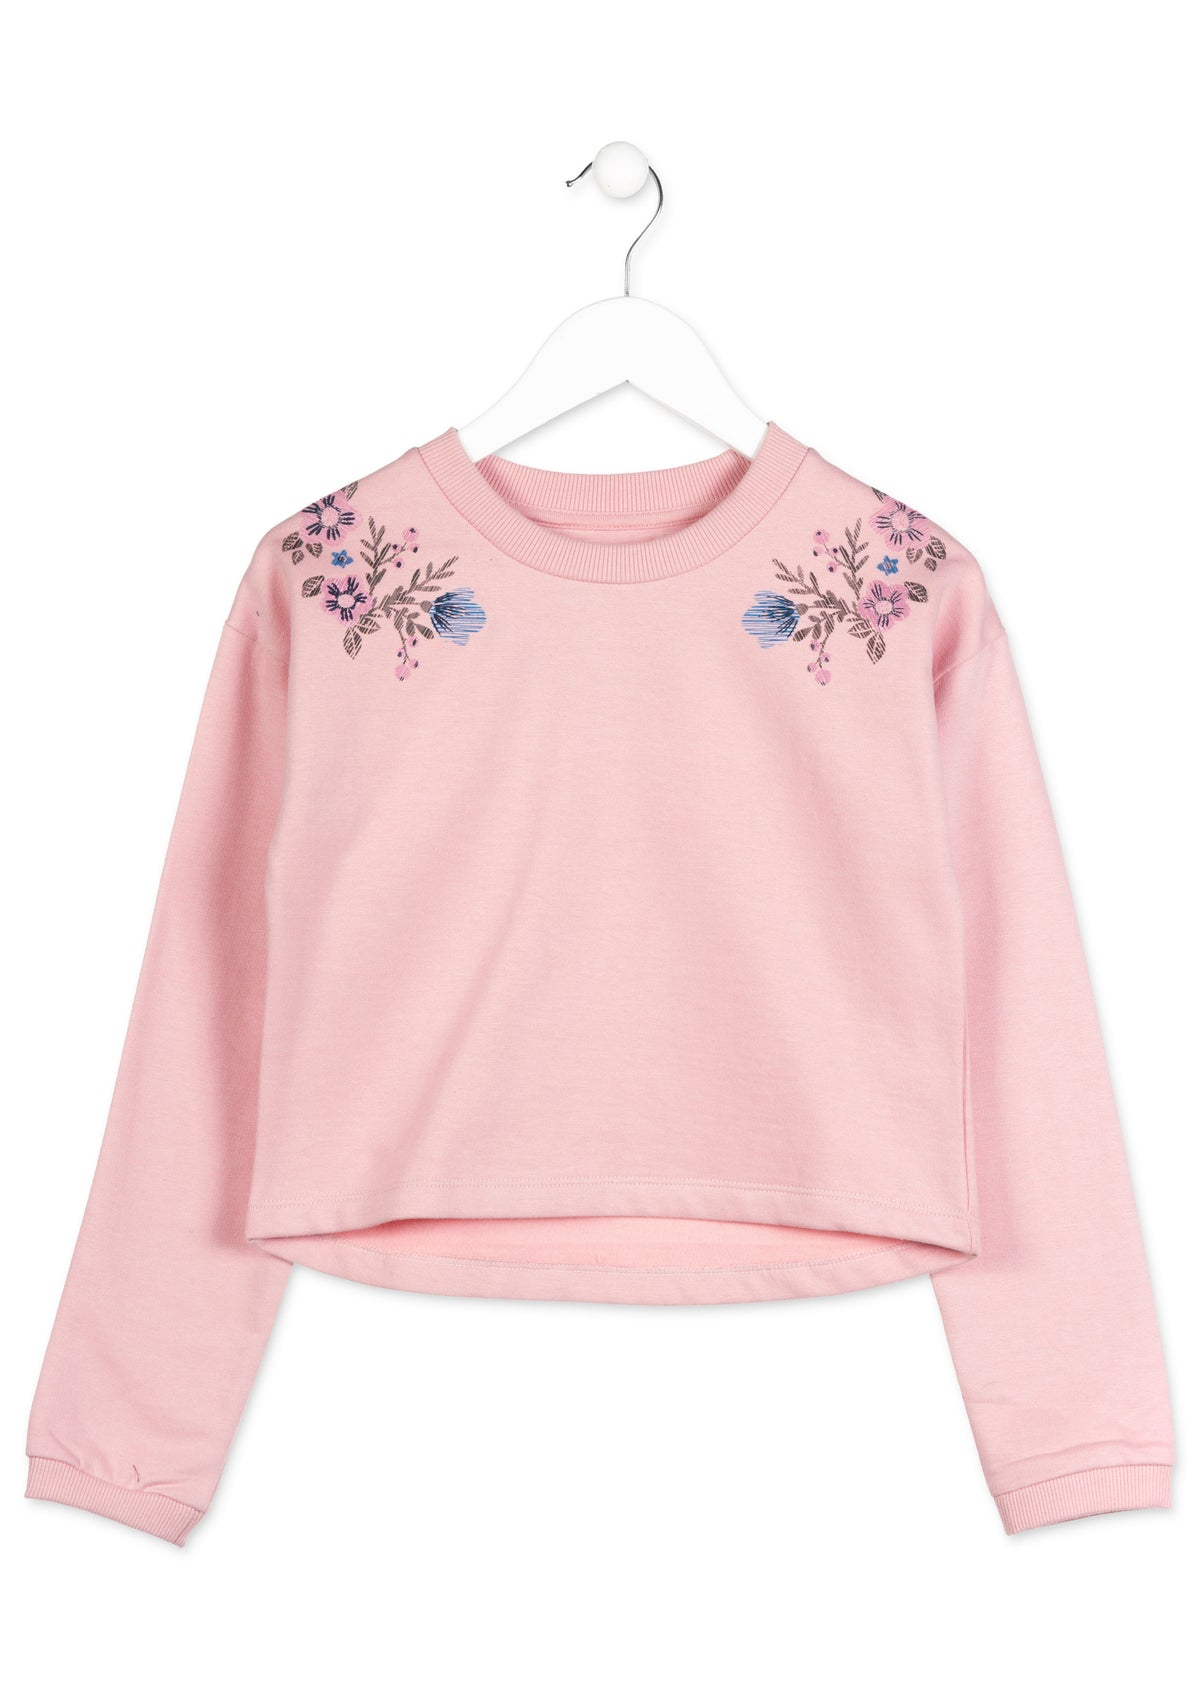 Losan Flower Sweatshirt